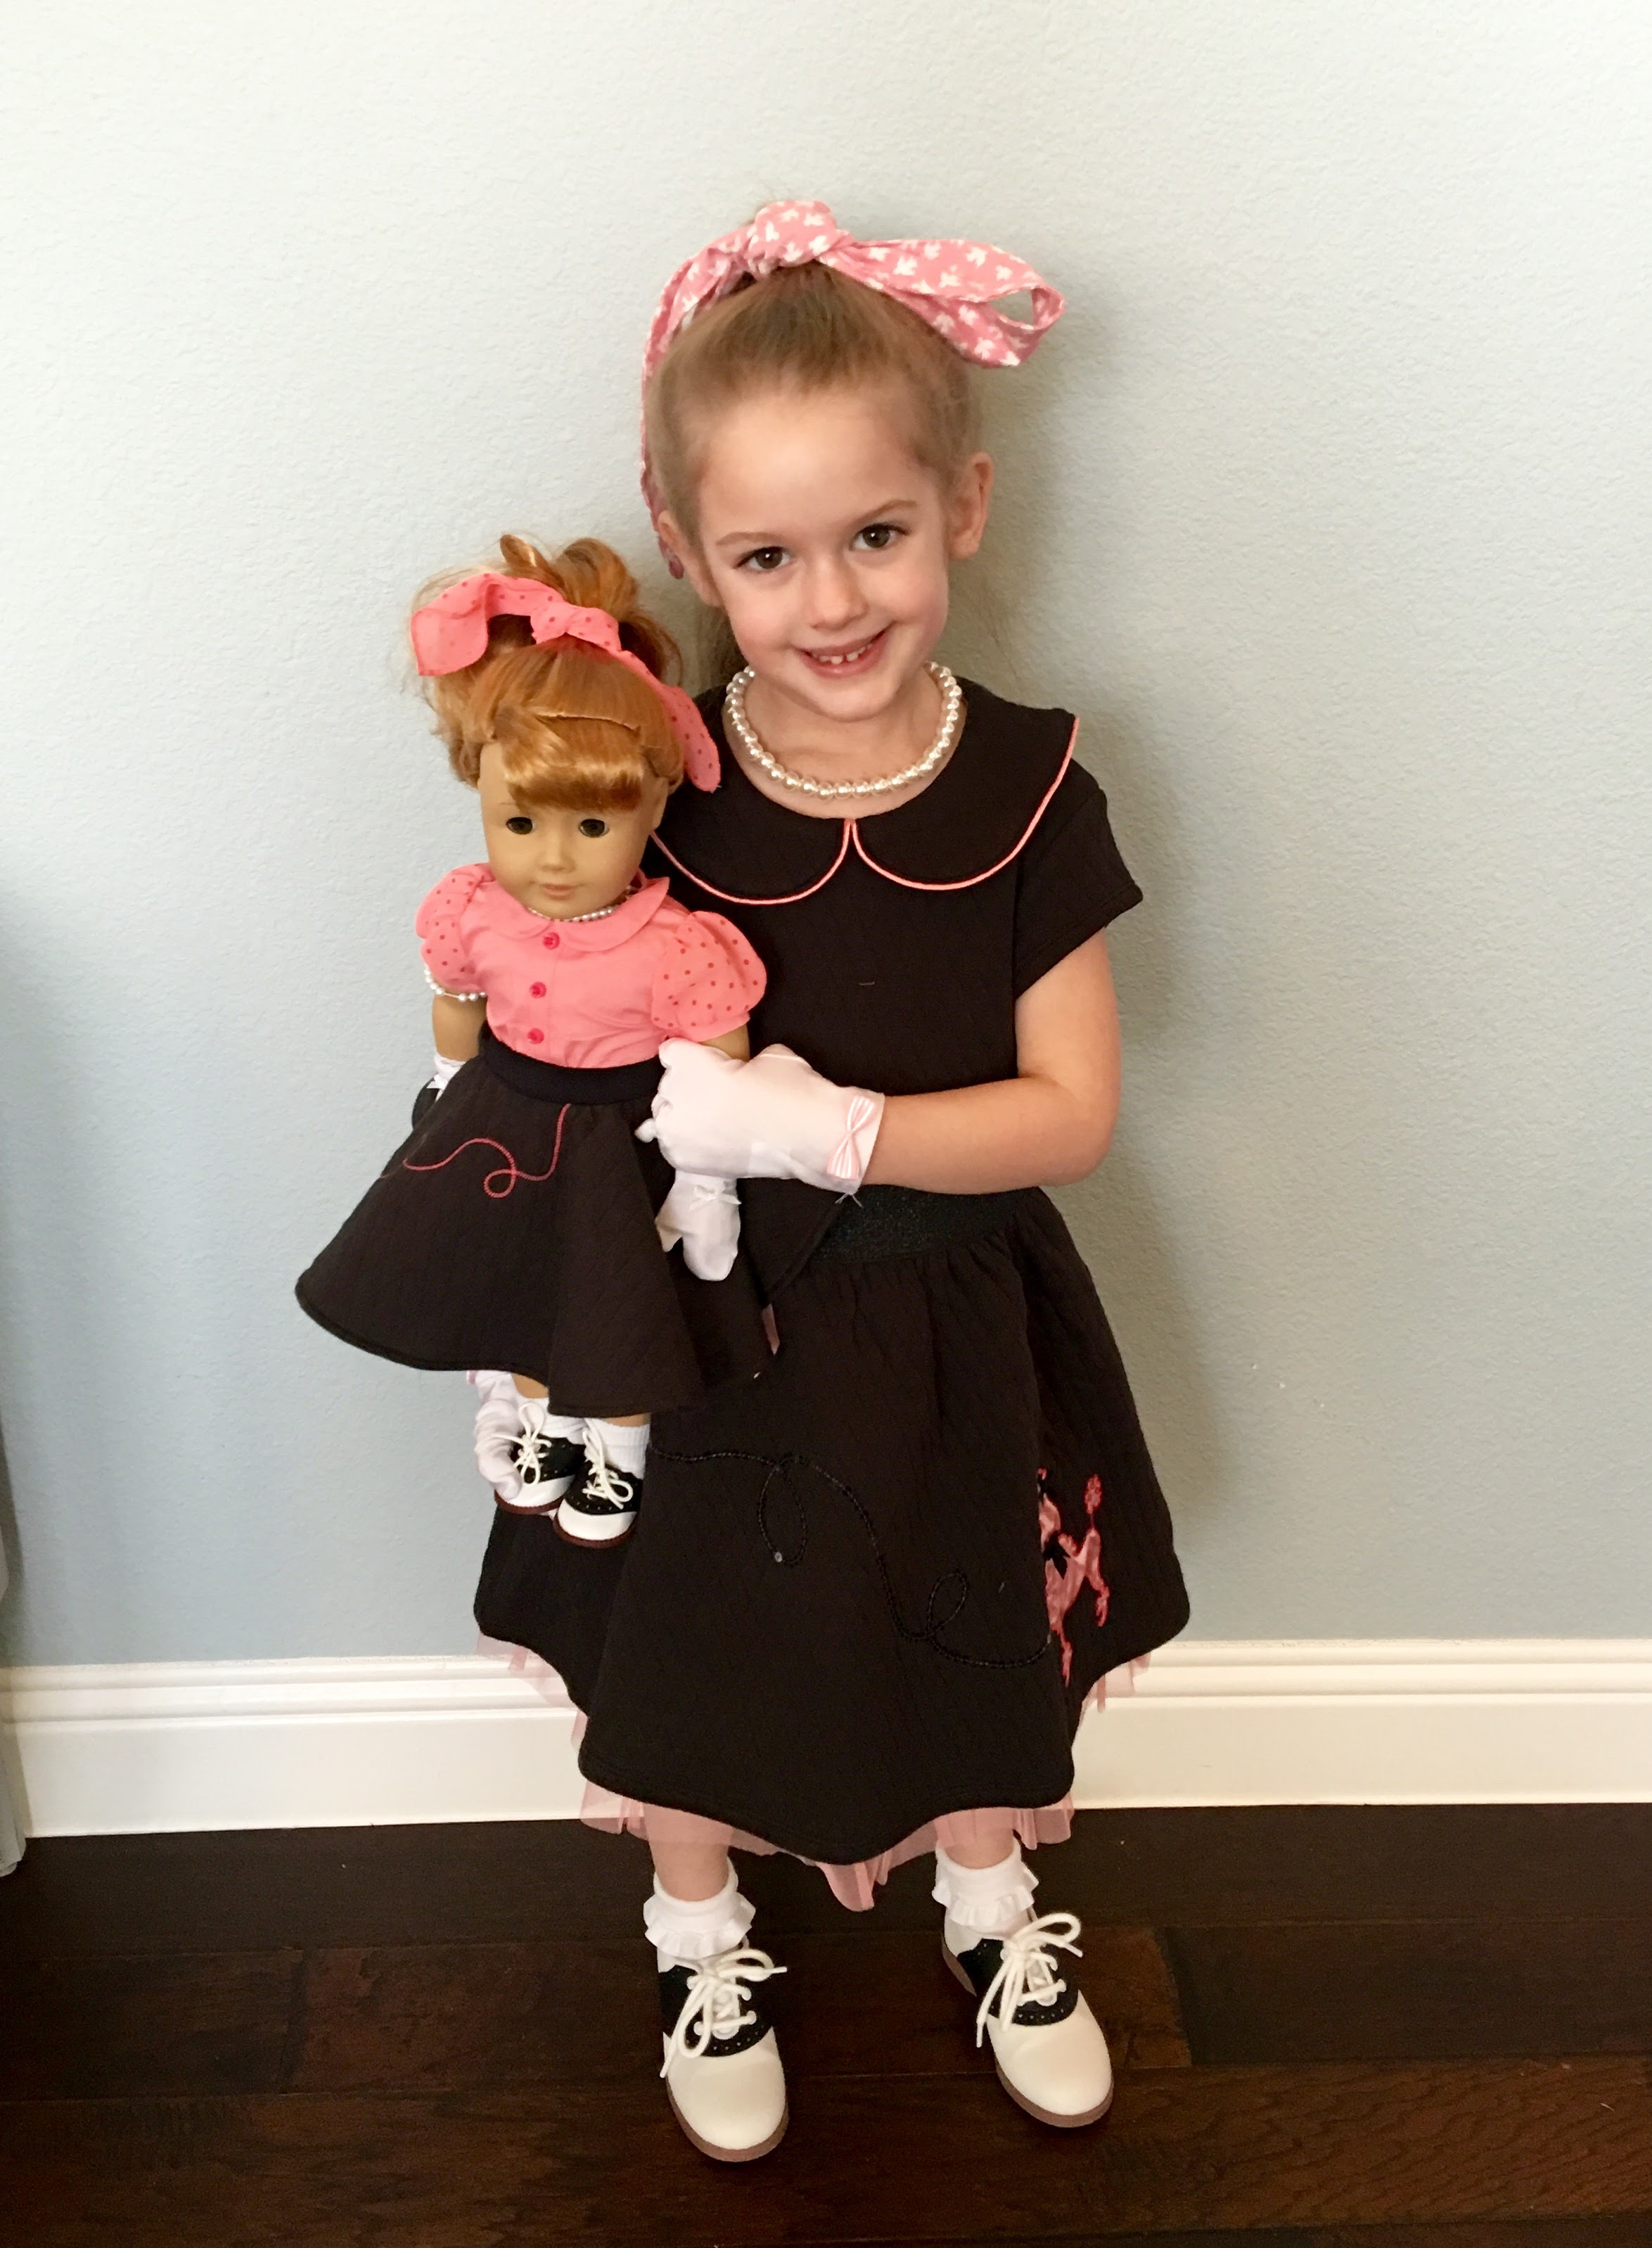 Holiday with her 1950's era Maryellen BeForever American Girl Doll along with a coordinating girl outfit also from American Girl